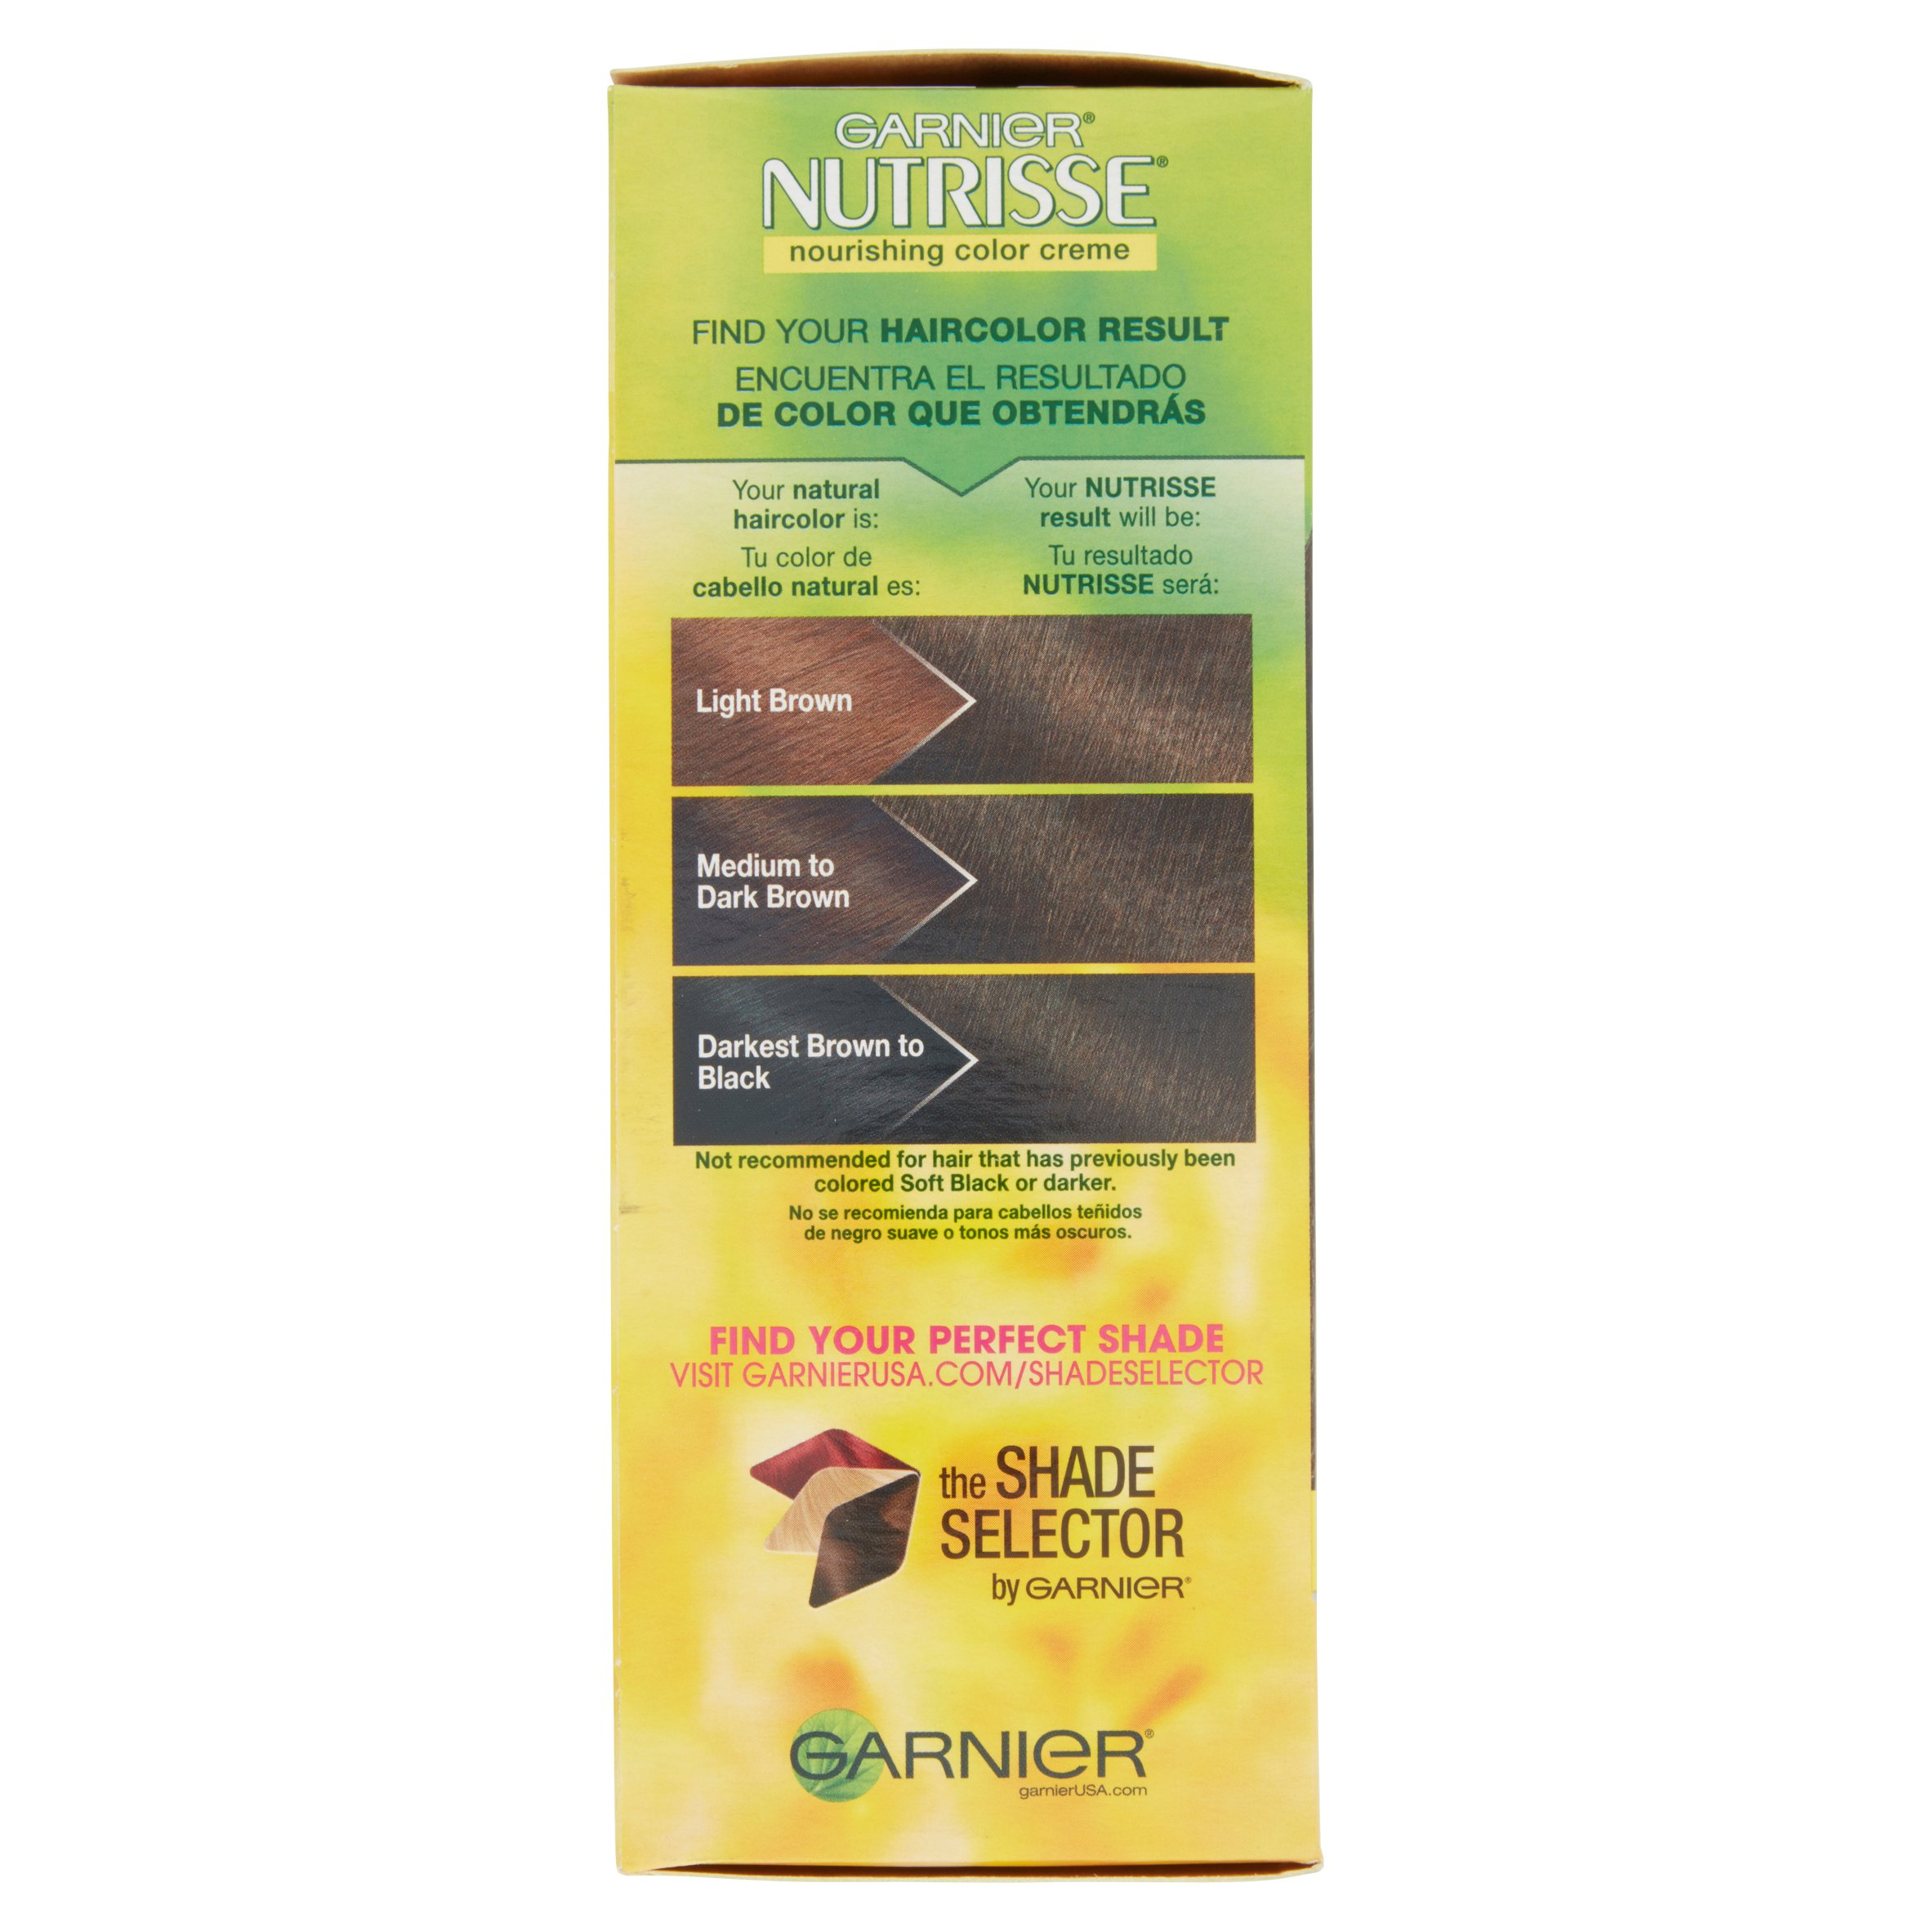 Garnier nutrisse nourishing color creme hair color 72 dark beige garnier nutrisse nourishing color creme hair color 72 dark beige blonde sweet latte walmart geenschuldenfo Image collections